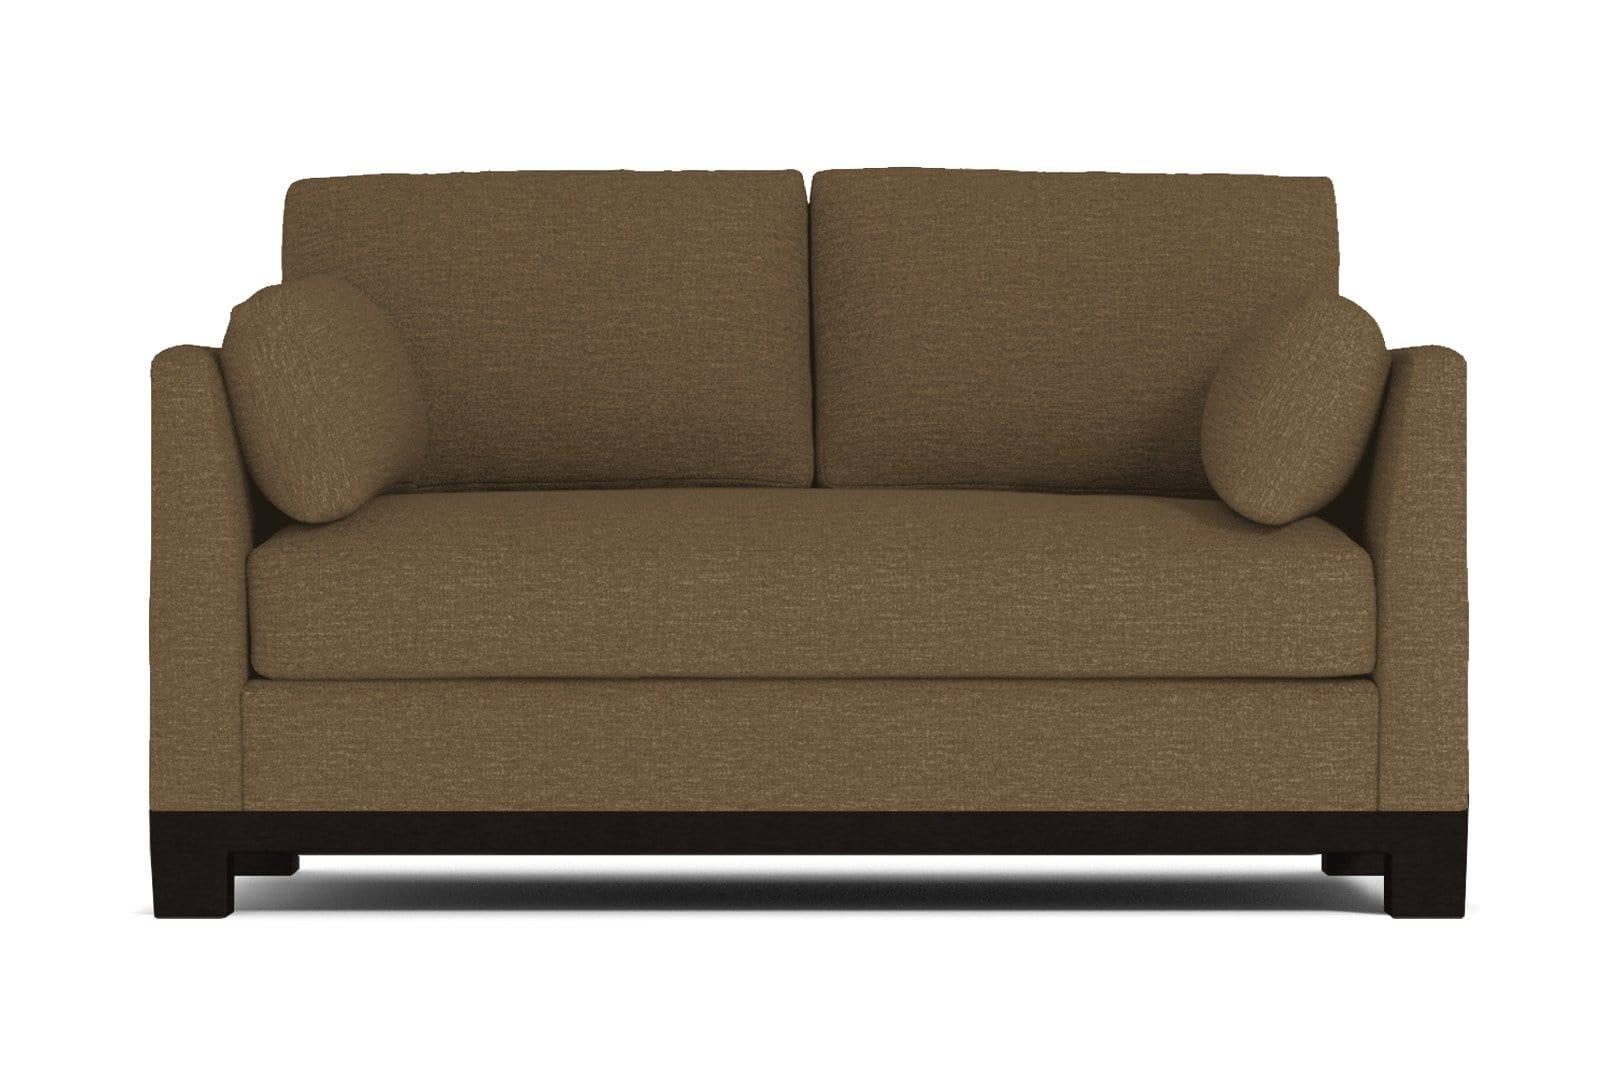 Avalon Apartment Size Sleeper Sofa - Brown - Pull Out Couch Bed Made in the USA - Sold by Apt2B